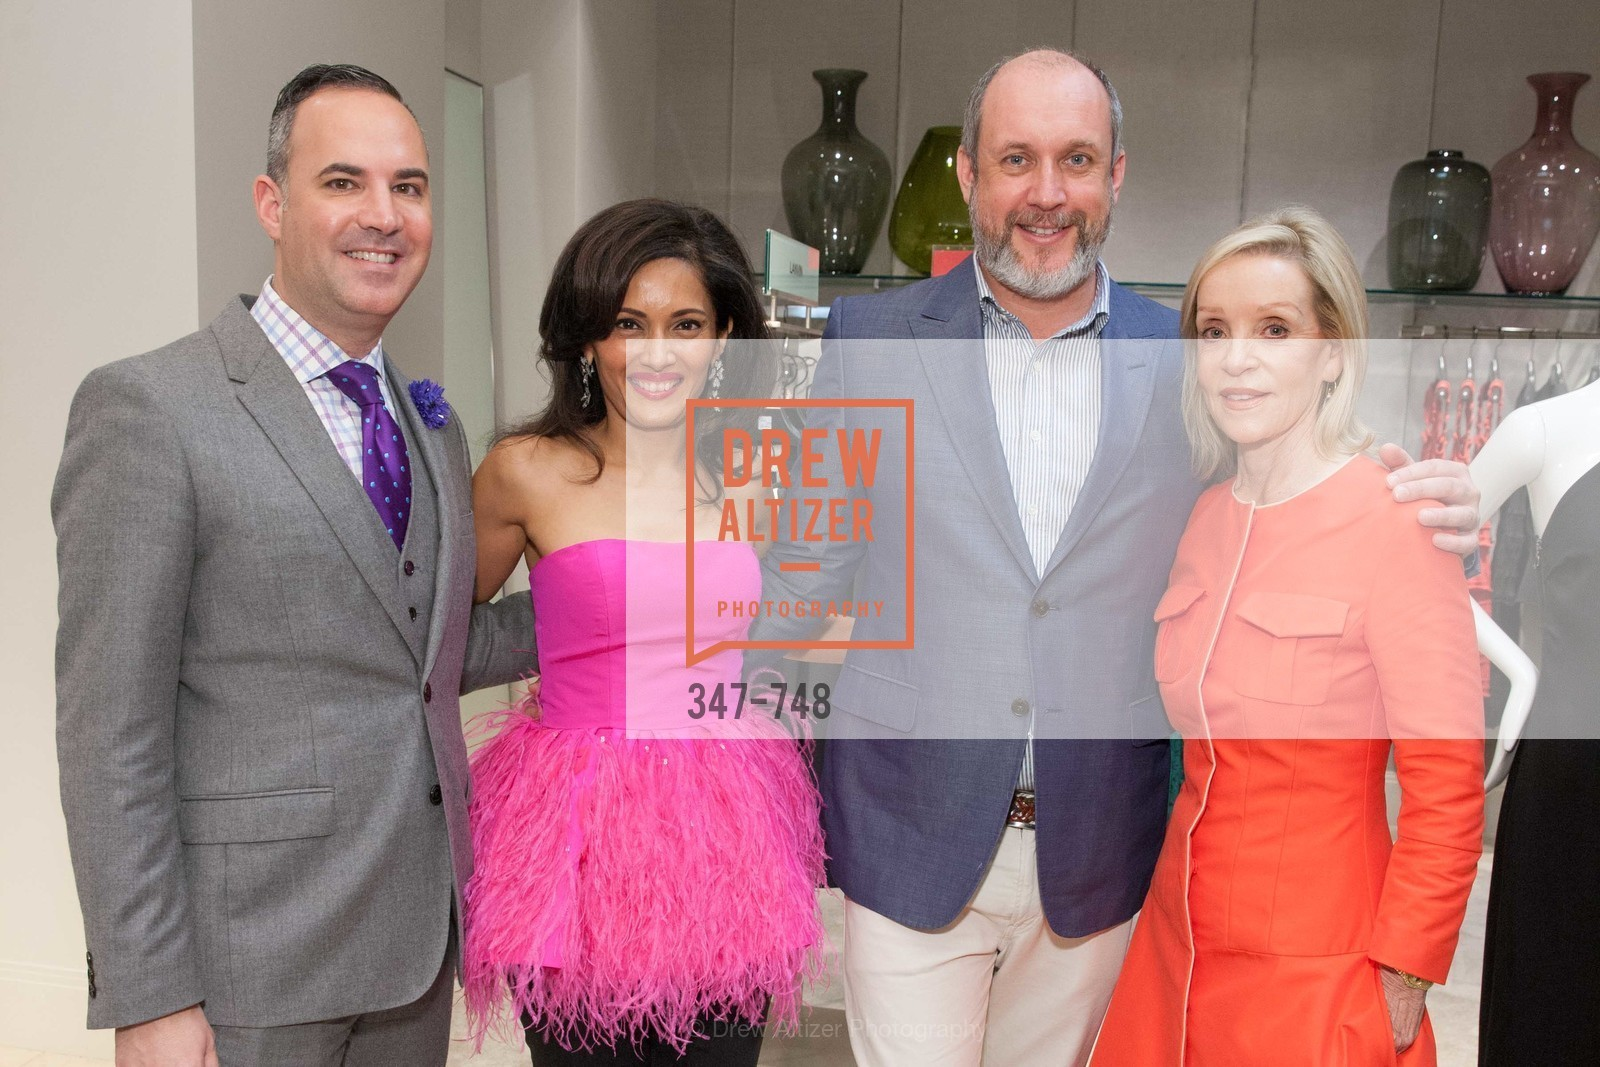 Robert Arnold-Kraft, Komal Shah, Peter Copping, Barbara Brown, PETER COPPING'S Personal Appearance at SAKS FIFTH AVENUE, US, May 22nd, 2015,Drew Altizer, Drew Altizer Photography, full-service agency, private events, San Francisco photographer, photographer california